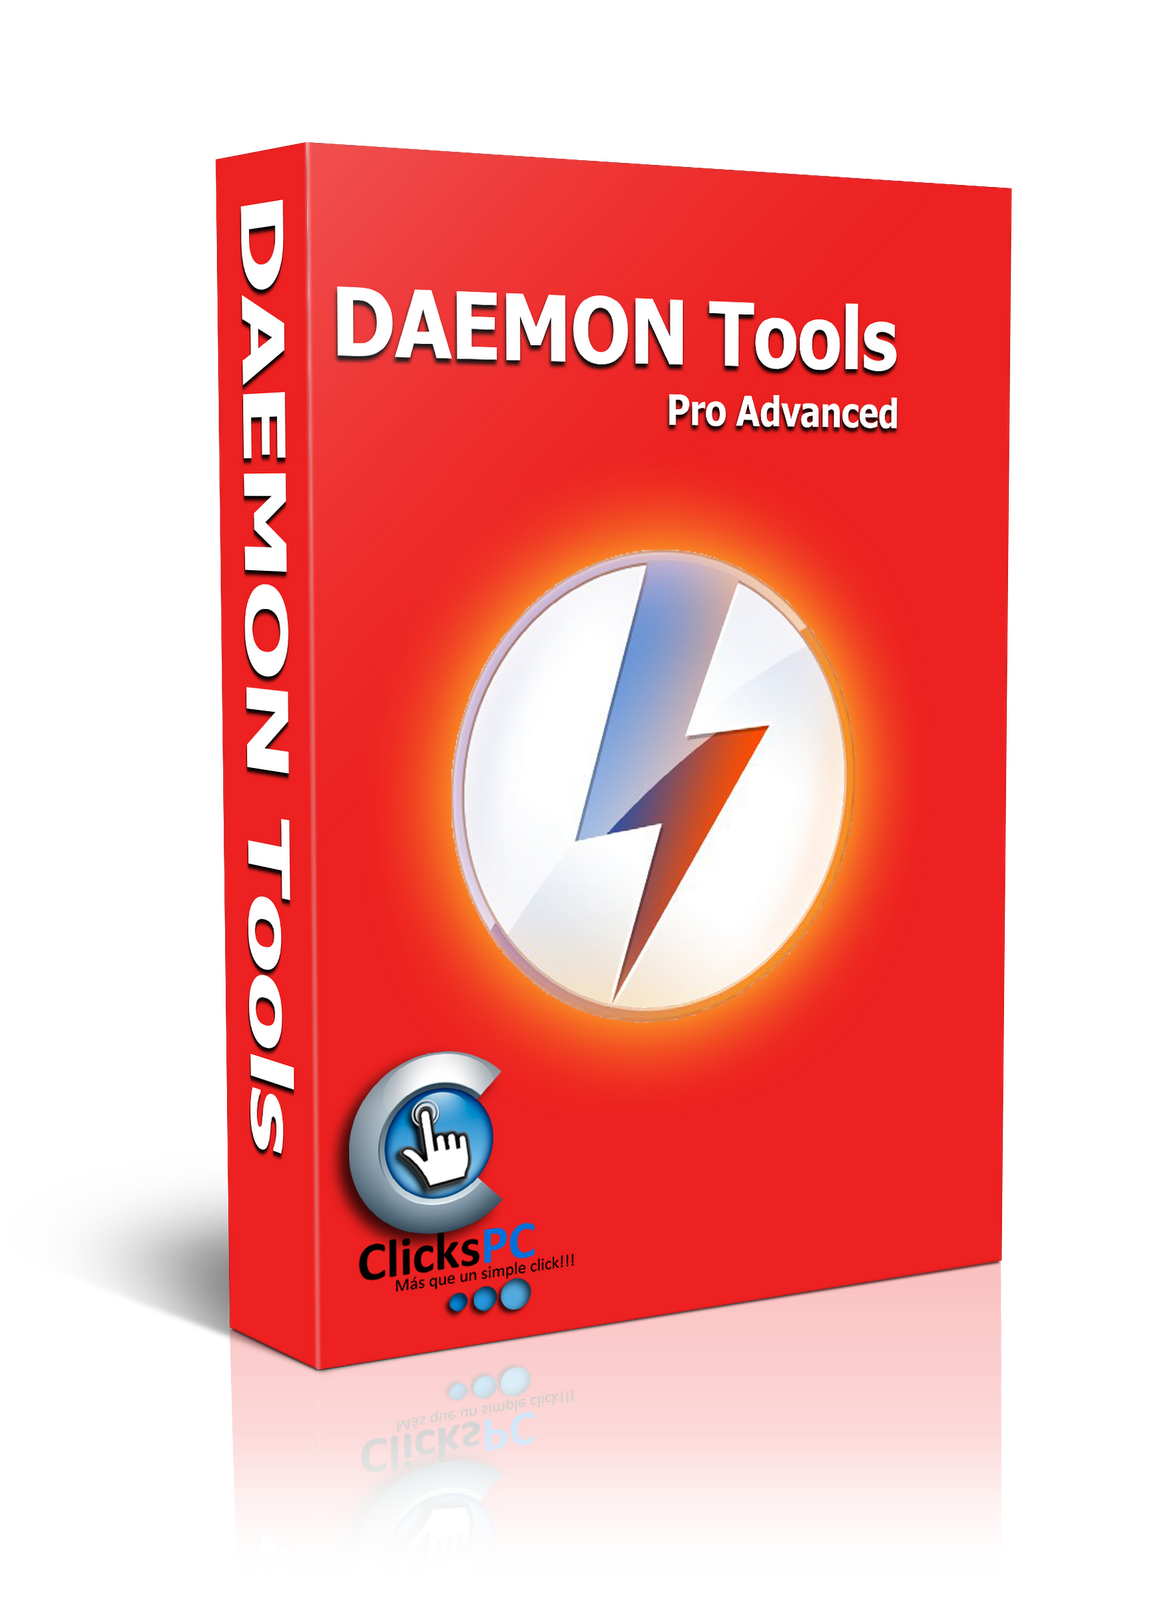 Daemon tools pro advanced v5 2 0 0348 including crack bann